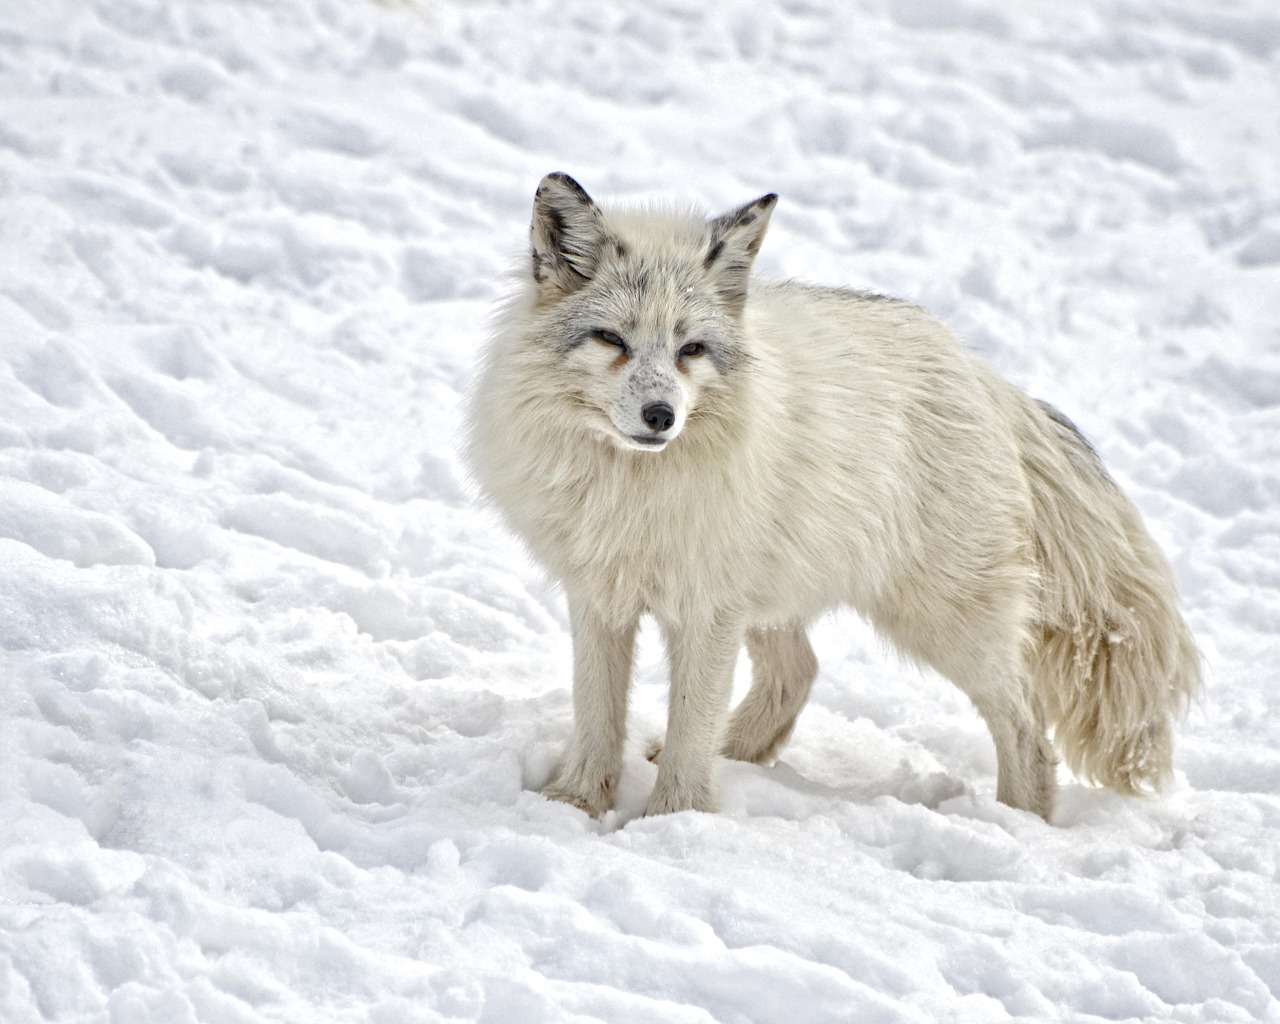 Photo of an artic fox in the snow